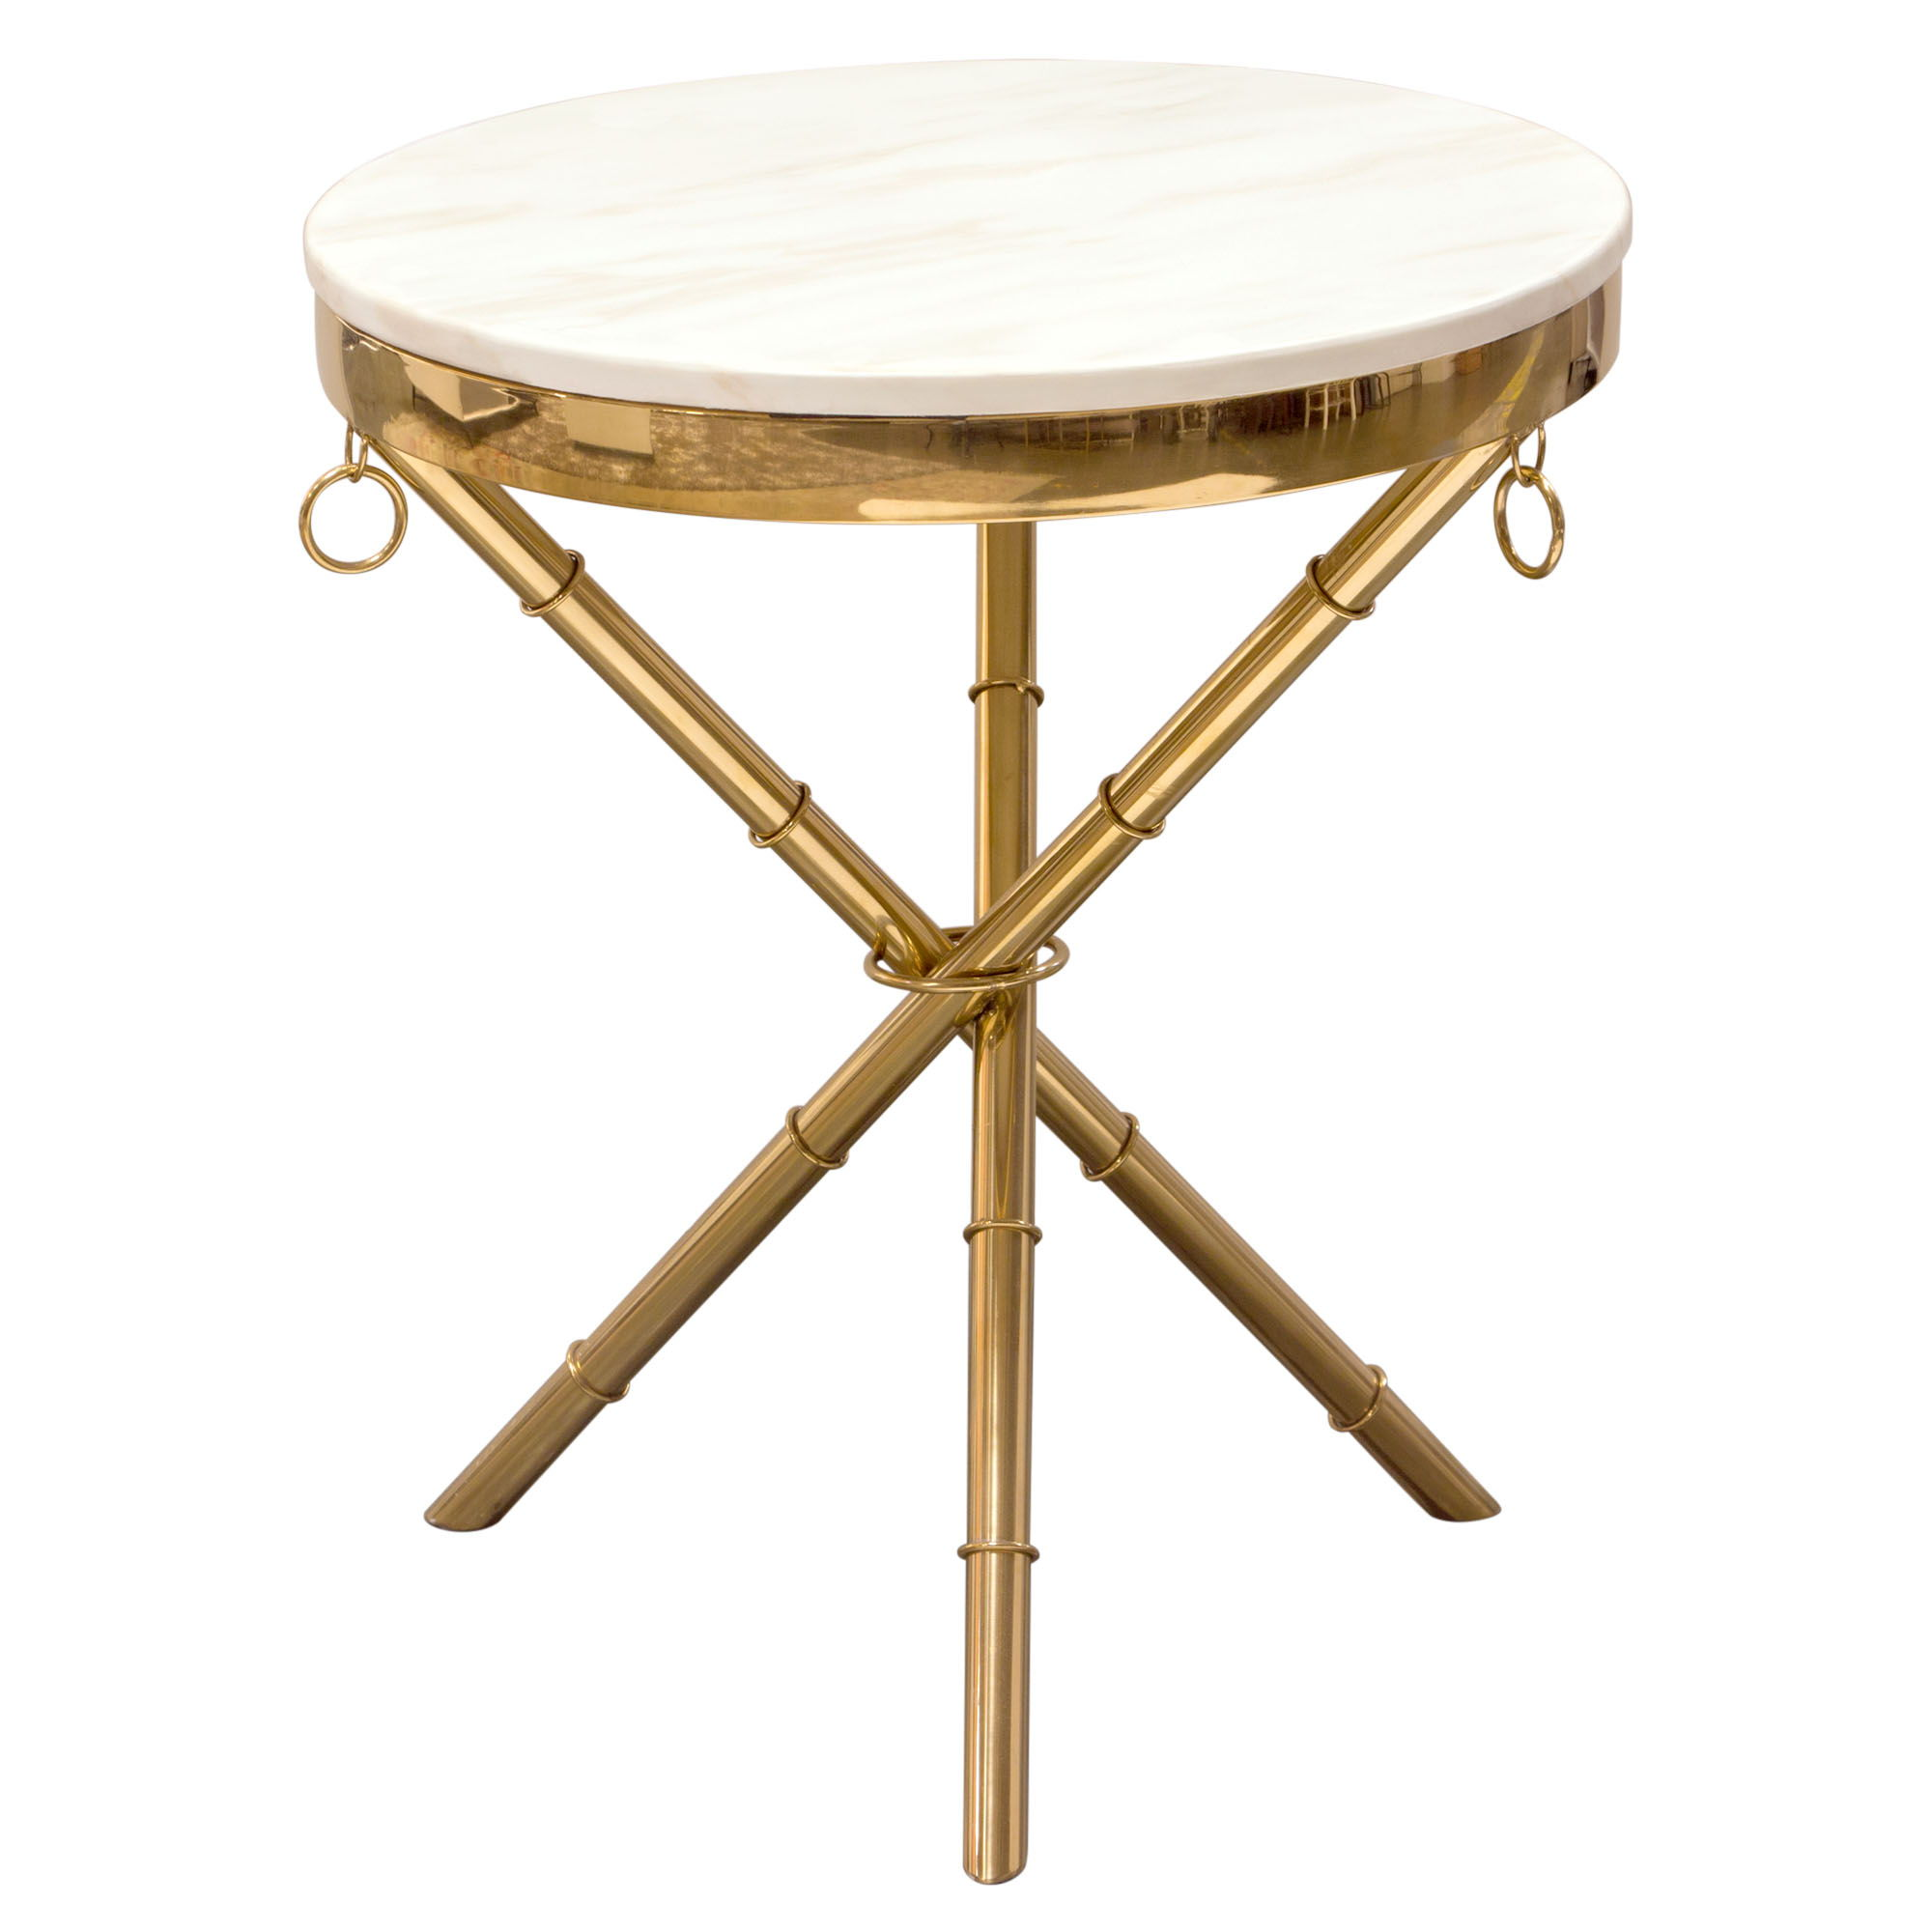 Miraculous Diamond Sofa Reed White Top Gold Base Round Accent Table Caraccident5 Cool Chair Designs And Ideas Caraccident5Info